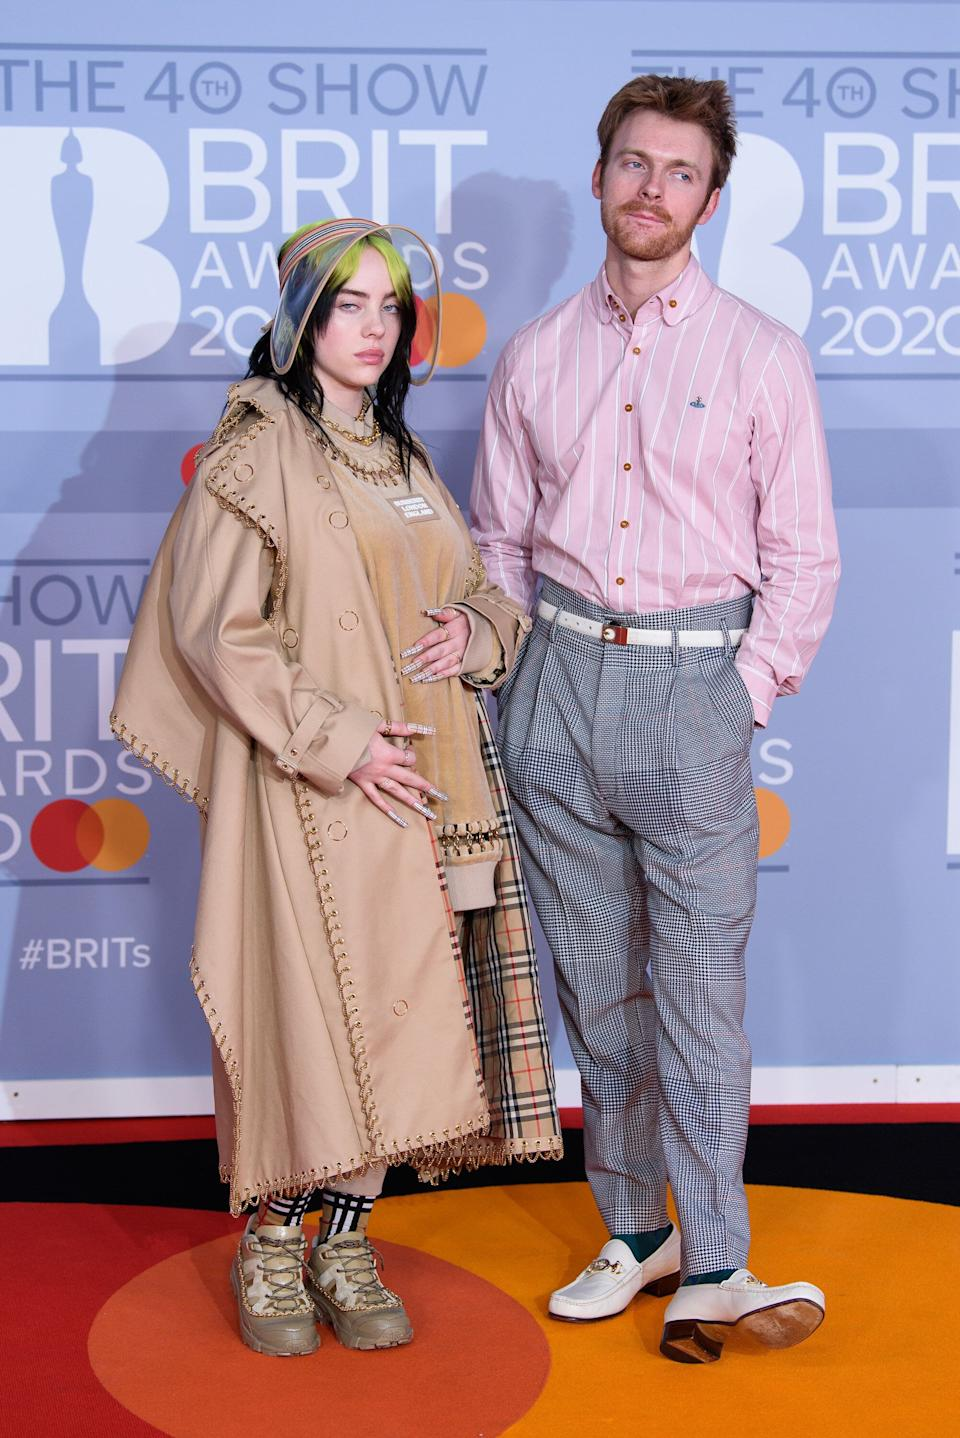 Lizzo and her brother, Finneas, at the Brit Awards (Photo: Joe Maher via Getty Images)